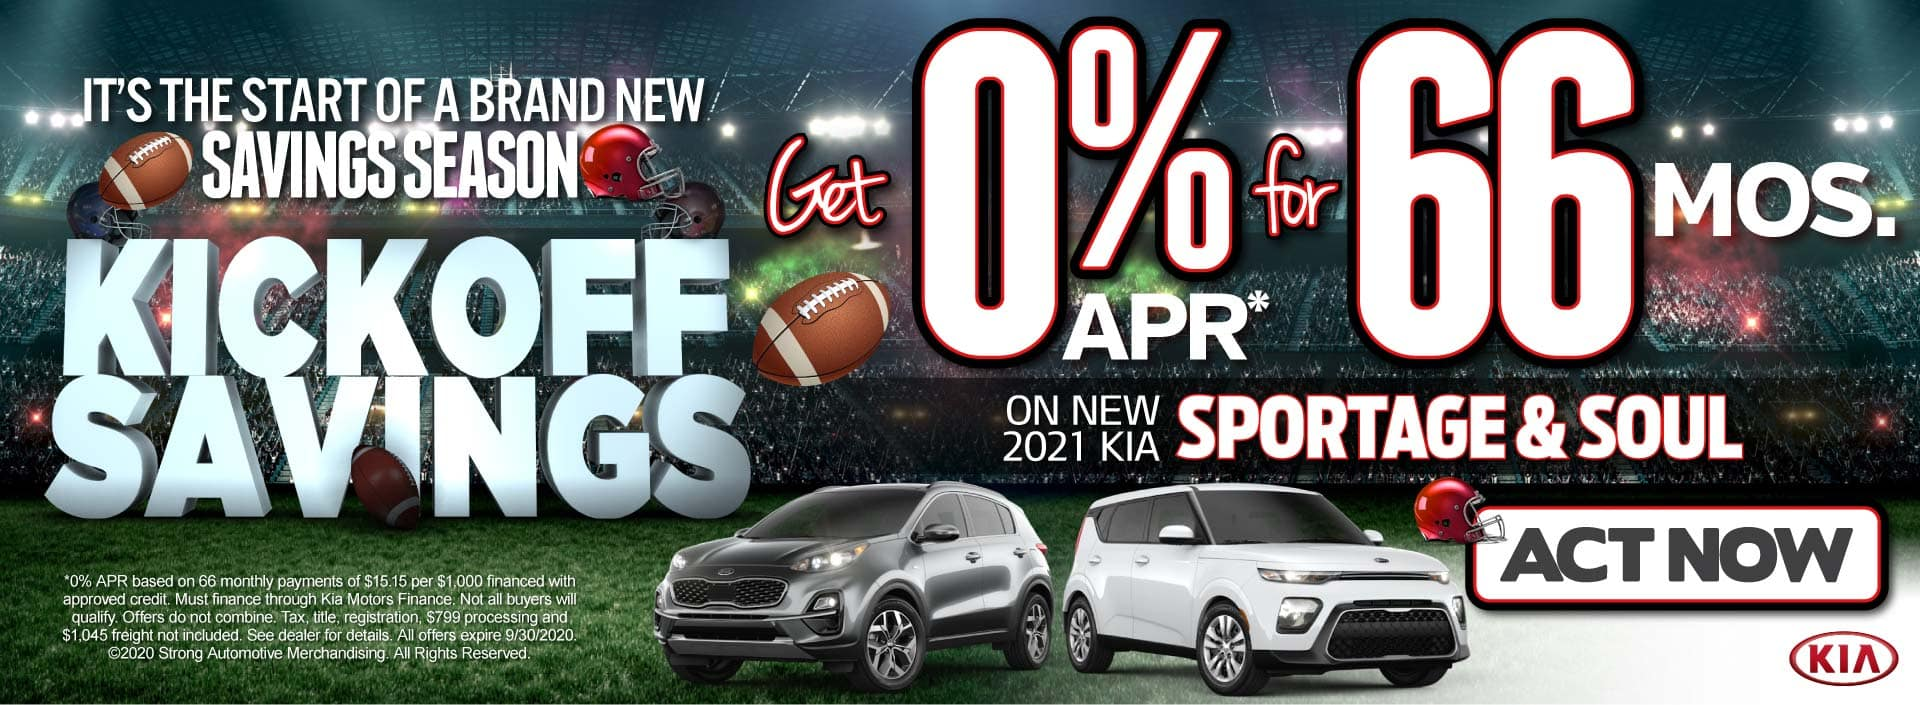 Sportage and Soul get 0% APR for 66 Mos. Act Now!